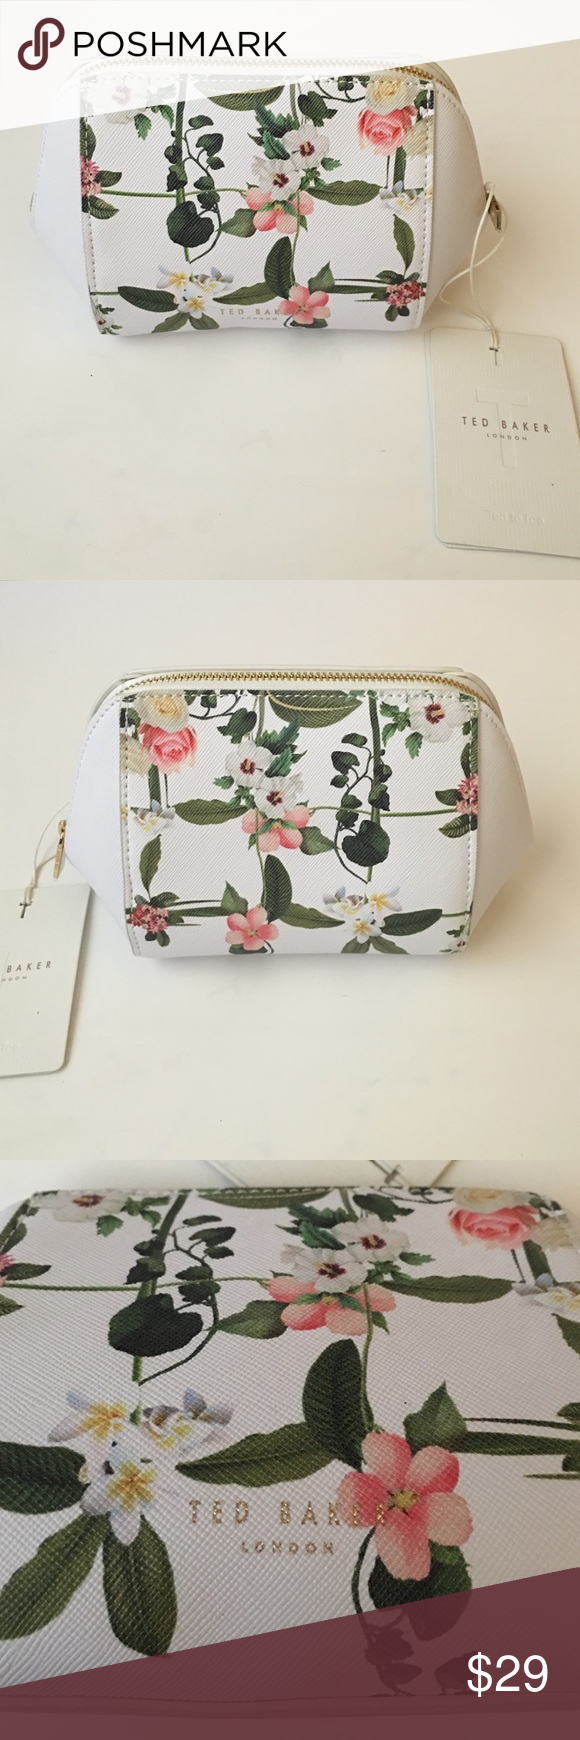 be2215d36 Ted Baker Floral Makeup Bag🎀 Ted Baker white/floral makeup bag with gold  zipper. Brand new with tags and lined in white silky material.